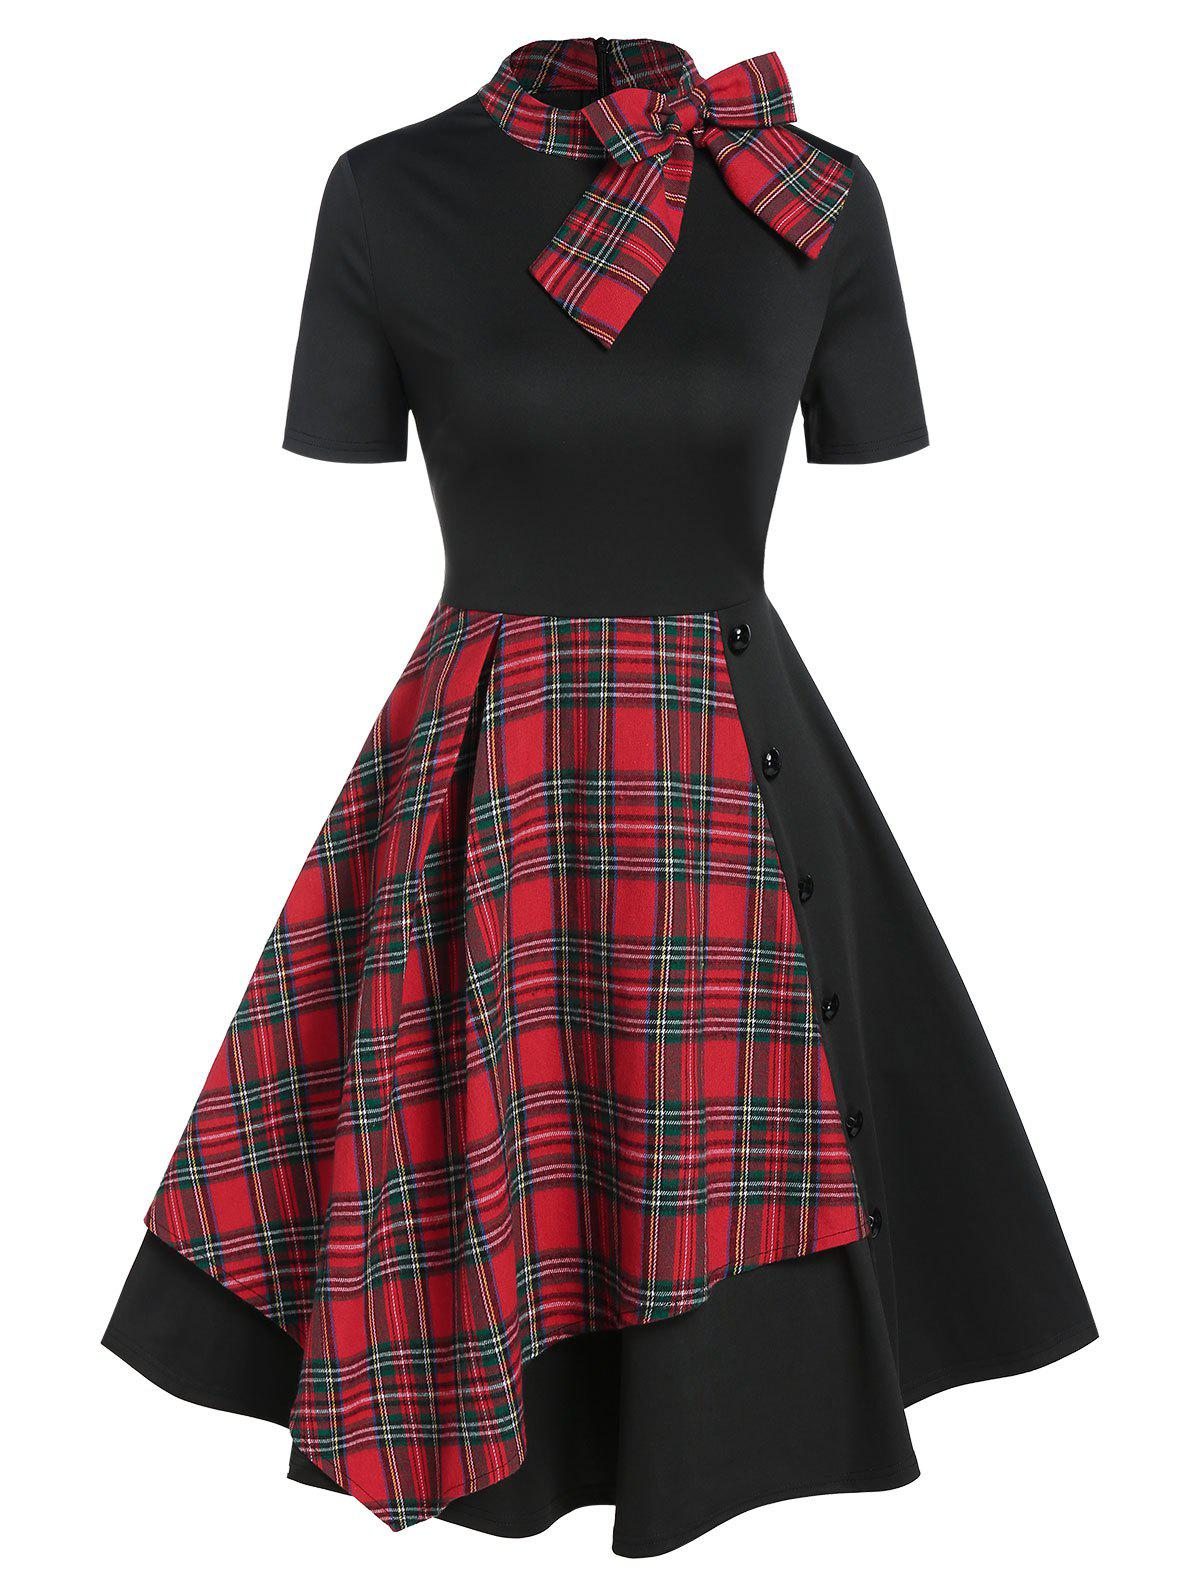 Chic Vintage Bowknot Plaid Fit and Flare Dress